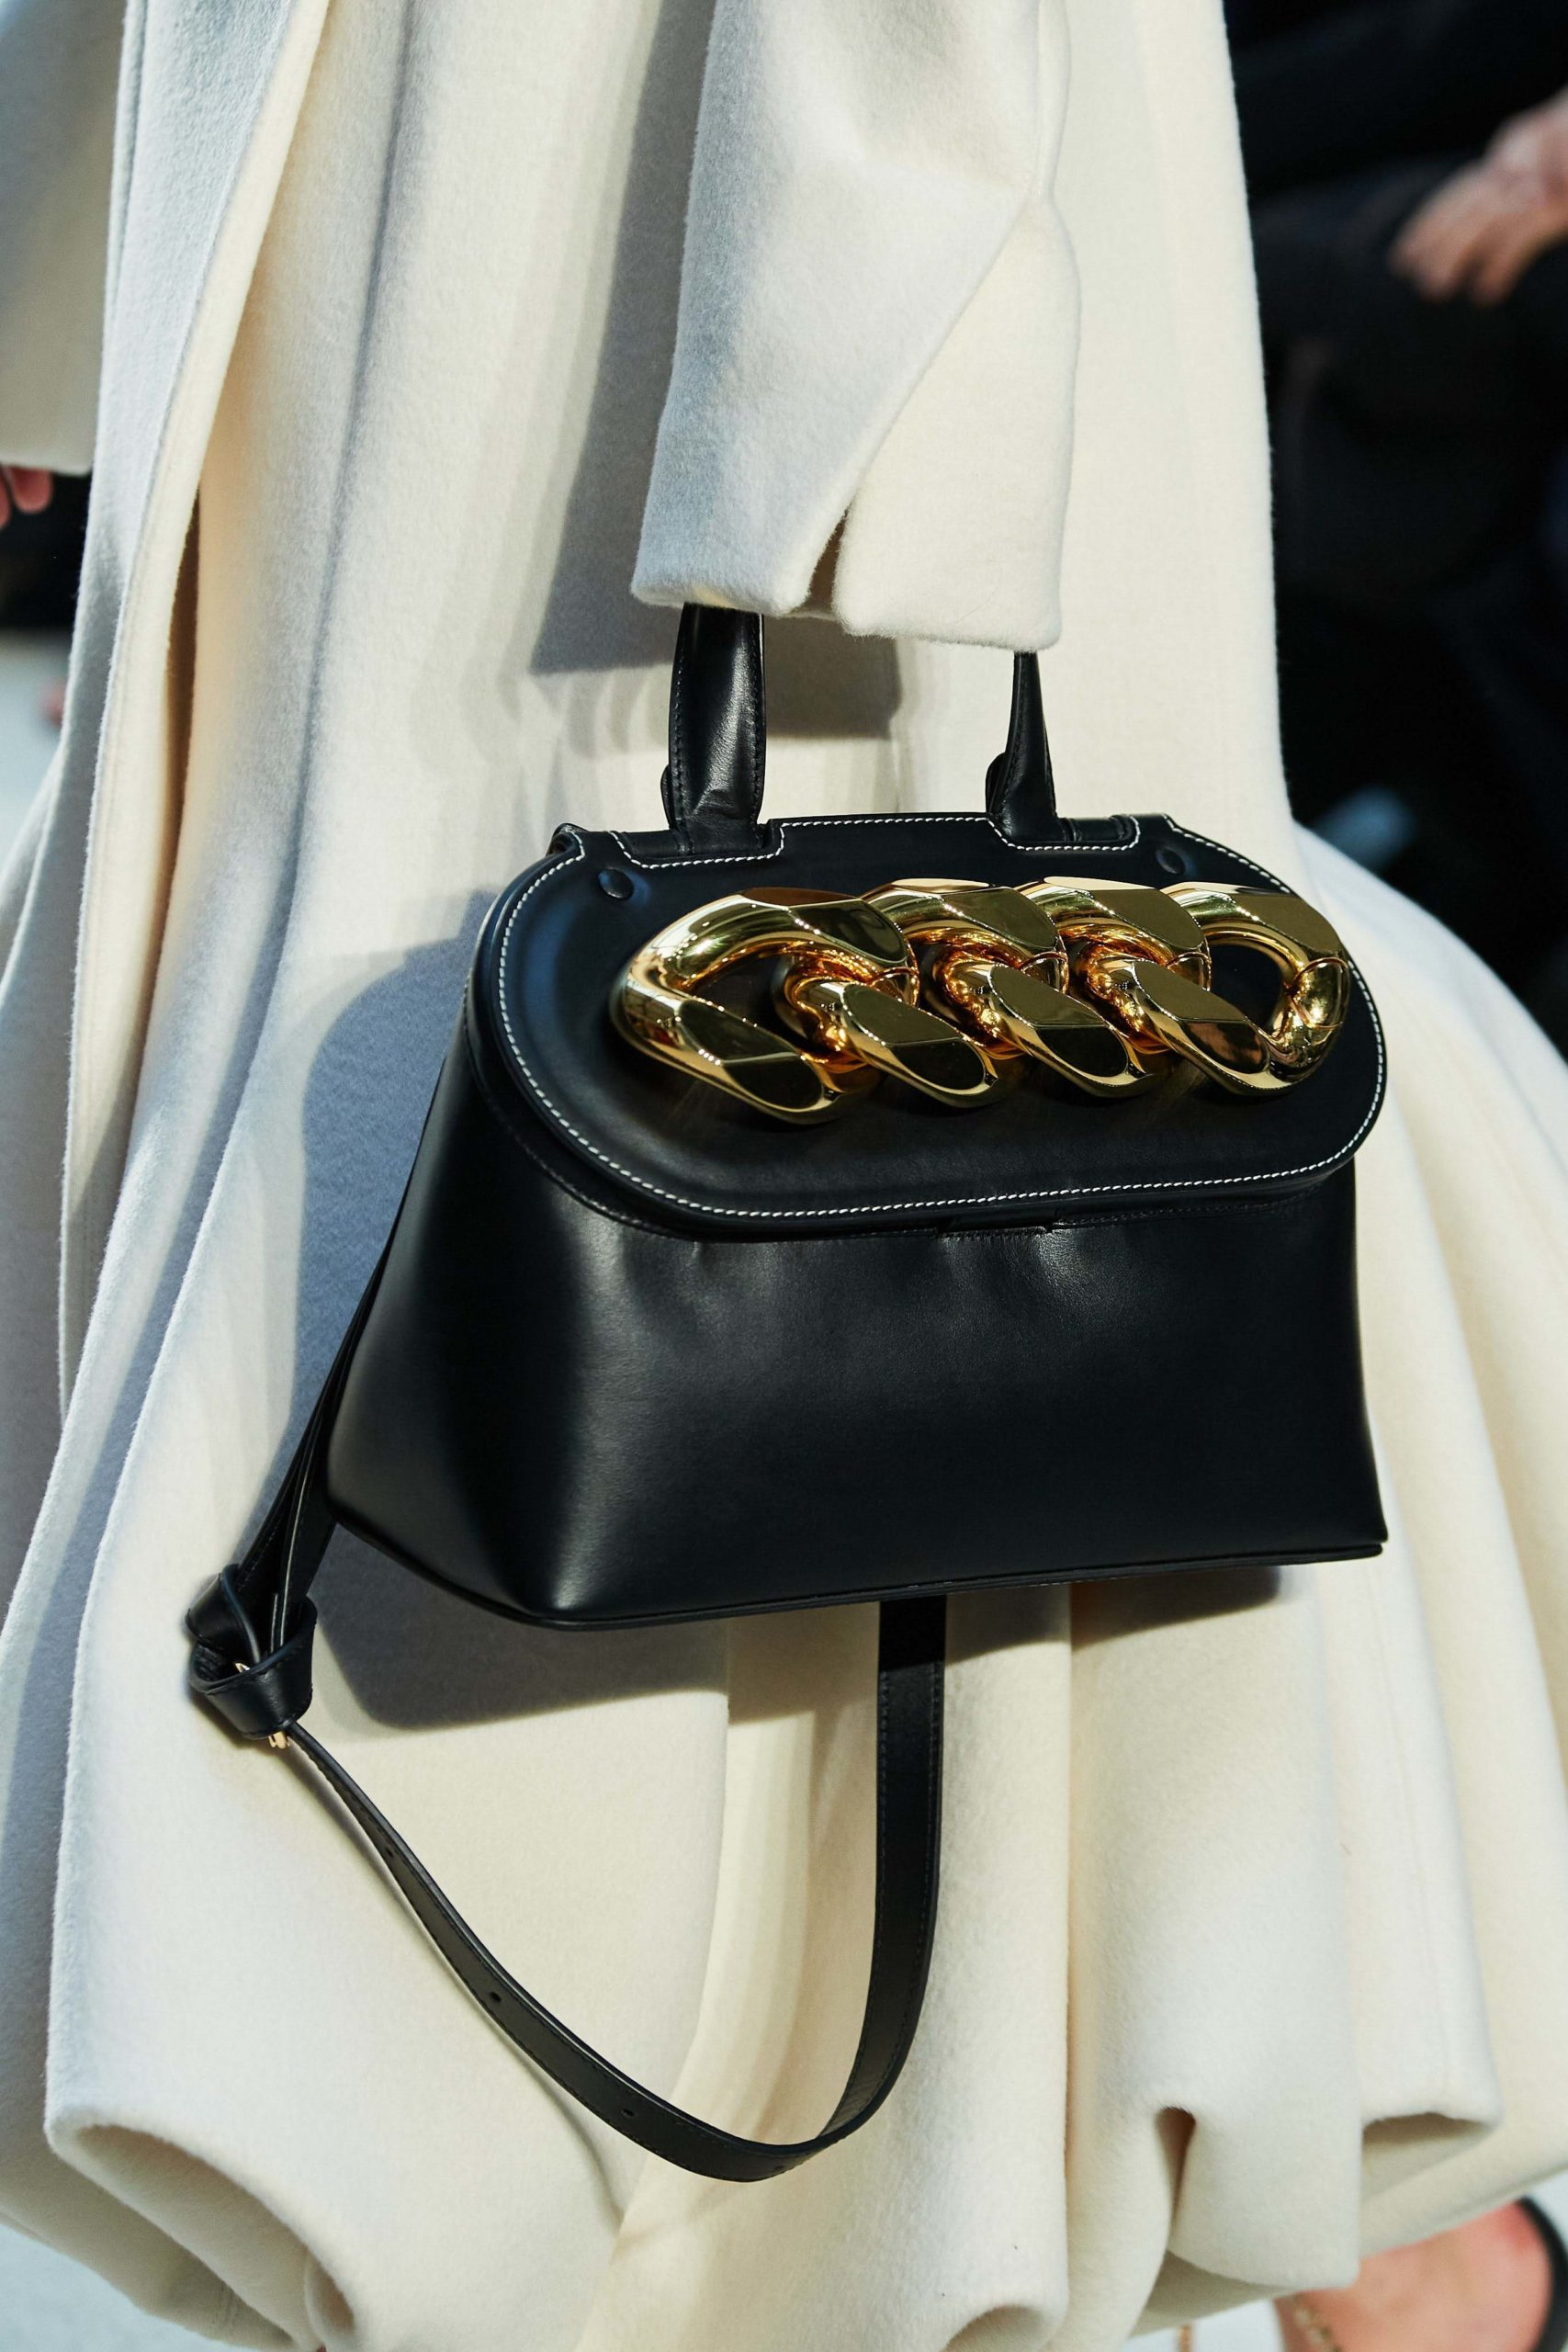 JW Anderson Fall 2020 trends runway coverage Ready To Wear Vogue details bag